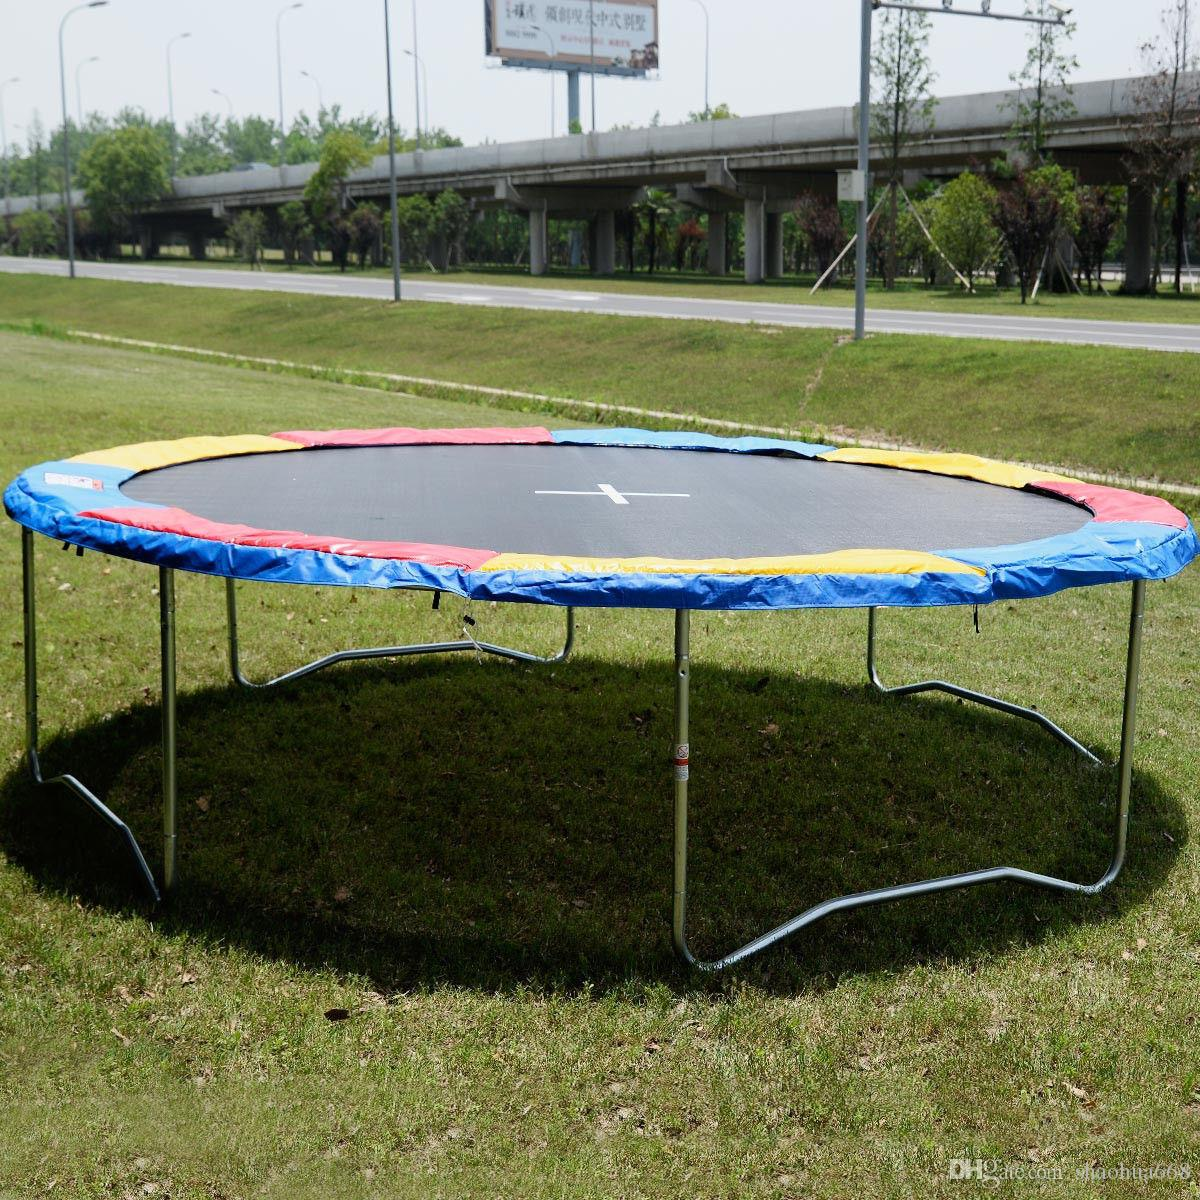 14 Ft Trampoline Safety Pad Epe Foam Spring Cover Frame: Discount Multi Color 15 Ft Trampoline Safety Pad Epe Foam